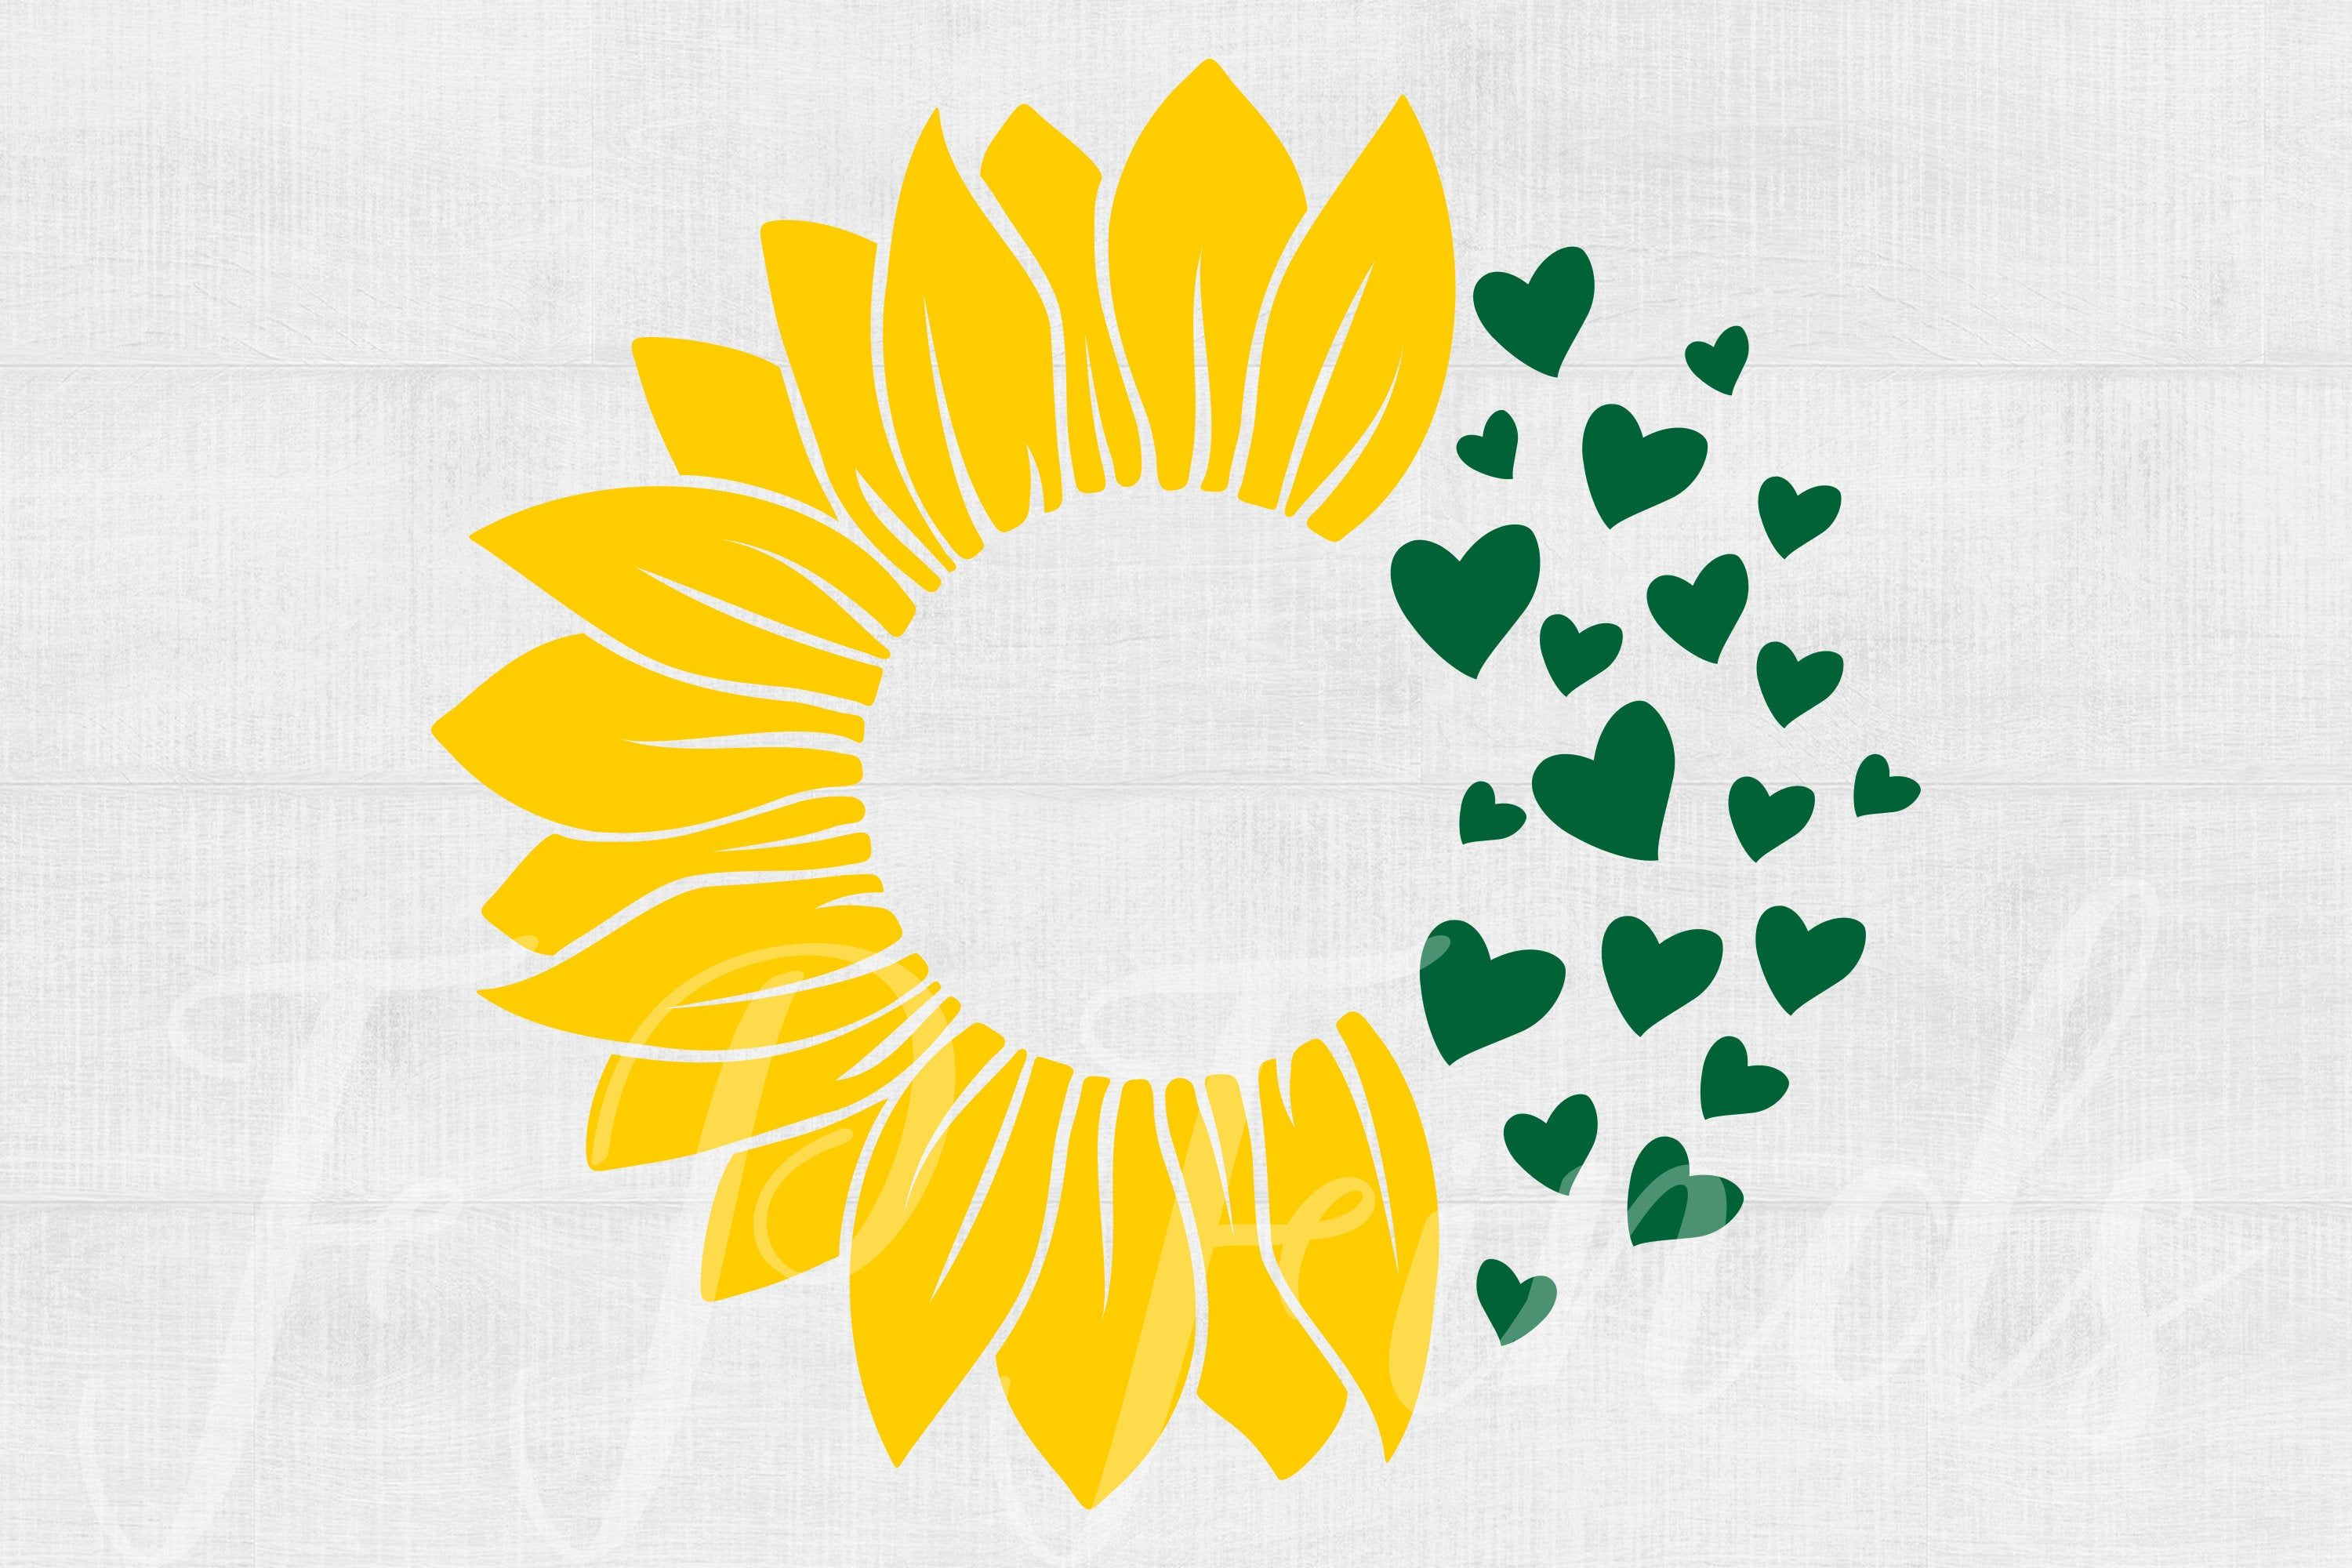 Sunflower Starbucks Svg Flower Starbucks Svg For Tumbler Cup Starbucks Cup Floral Decal Starbucks Decal Venti Tumbler S In 2020 Butterflies Svg Floral Decal Flower Svg